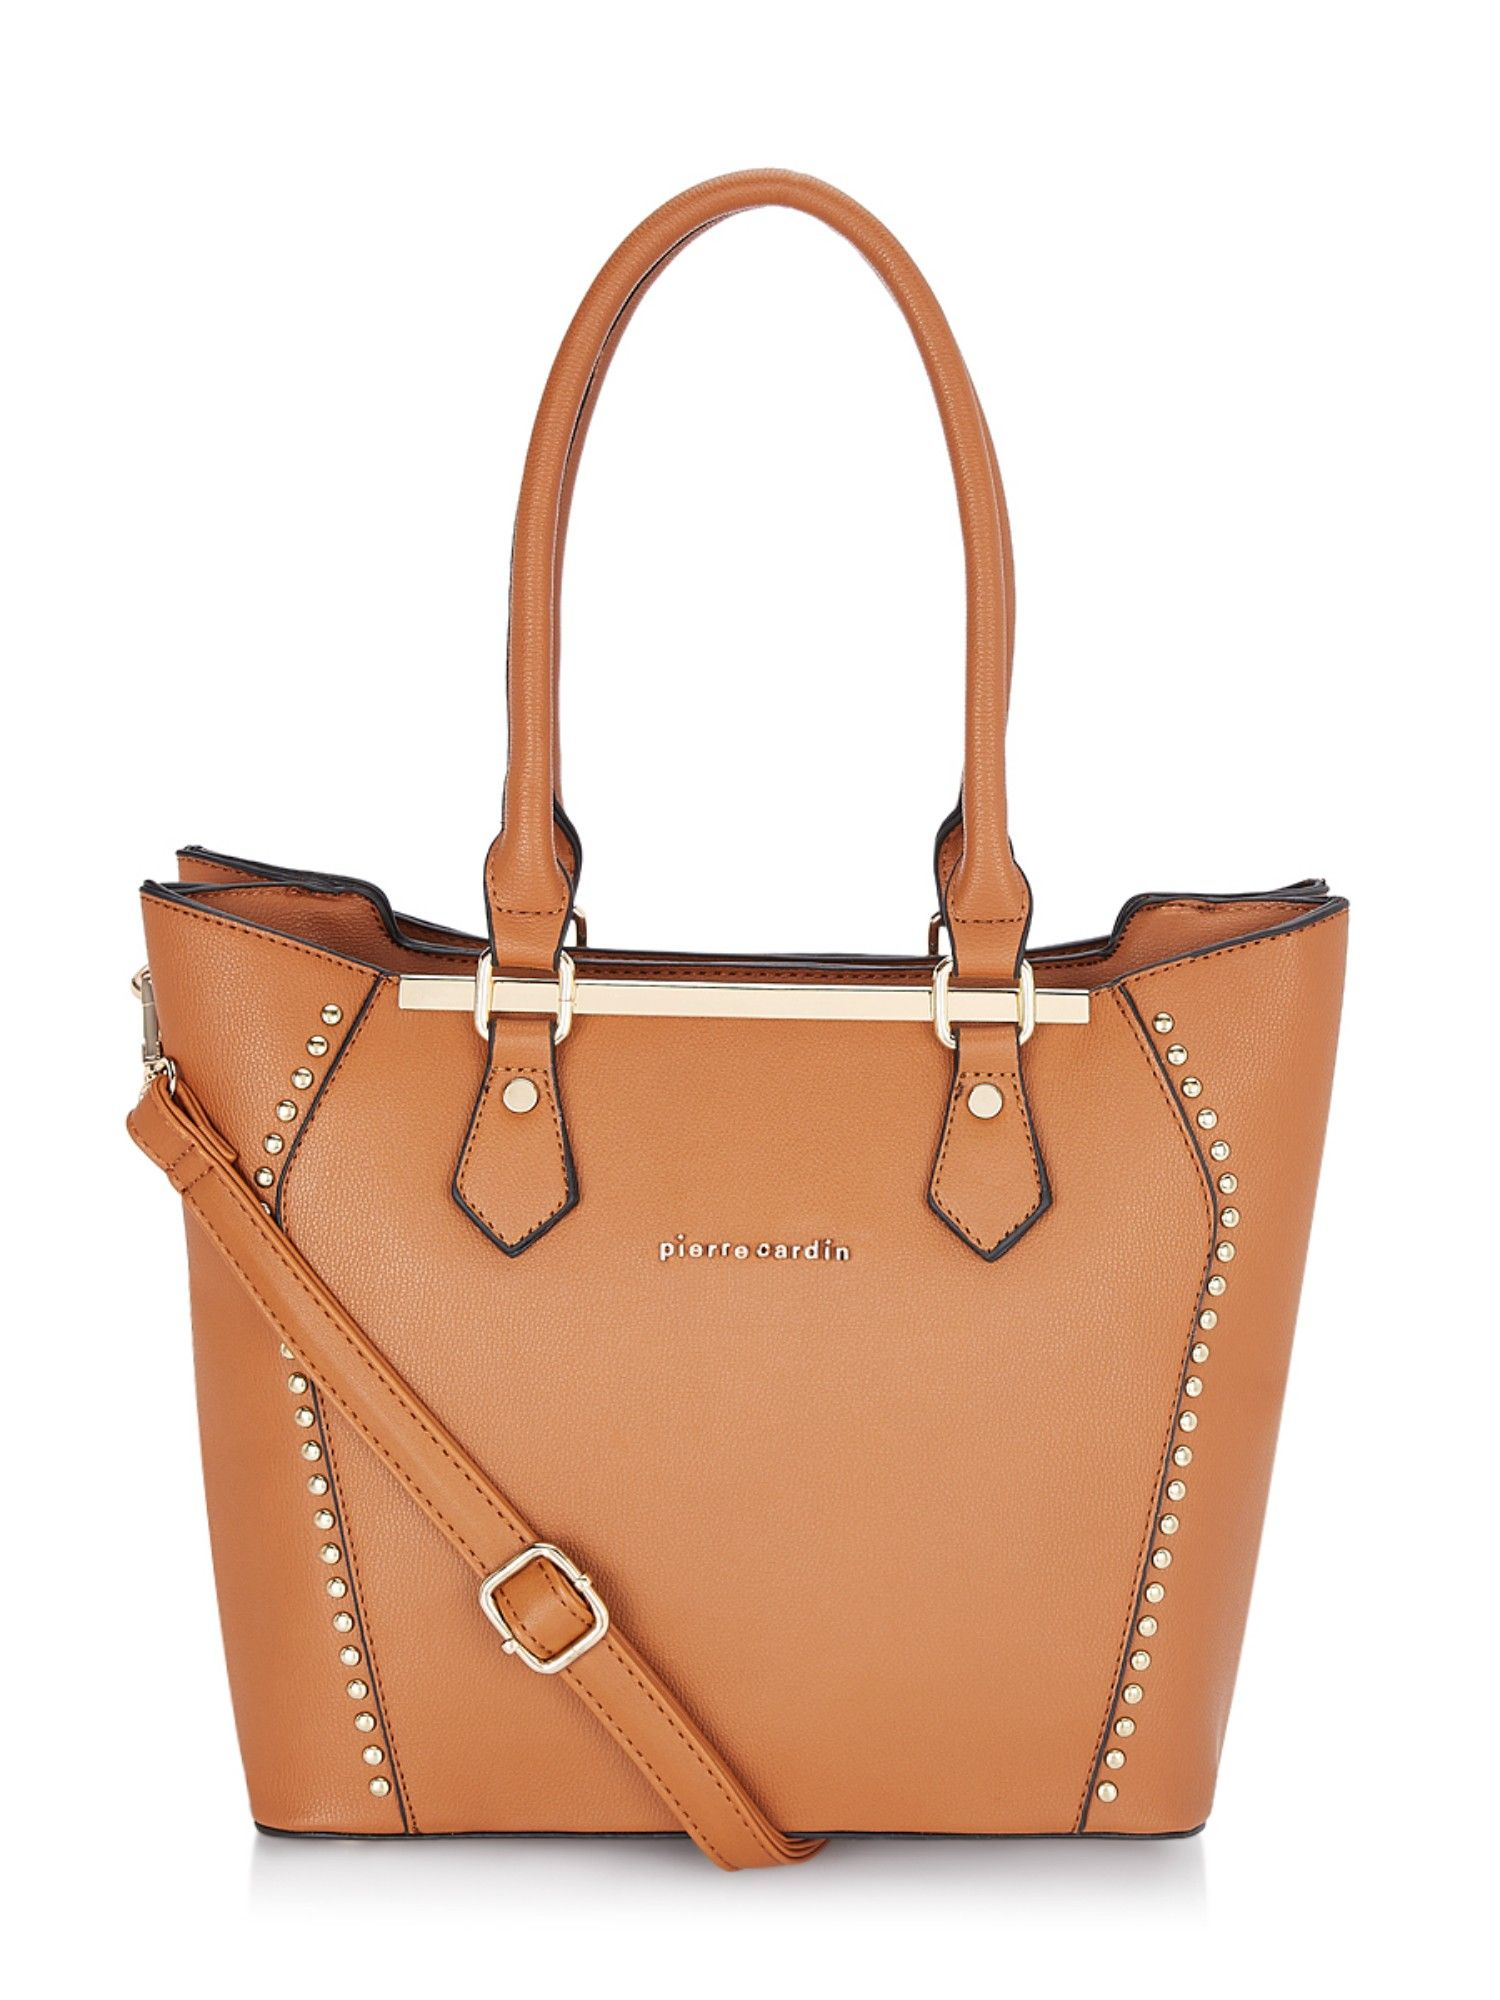 Pierre Cardin Bags Tan Solid Tote Bag Buy Pierre Cardin Bags Tan Solid Tote Bag Online At Best Price In India Nykaa